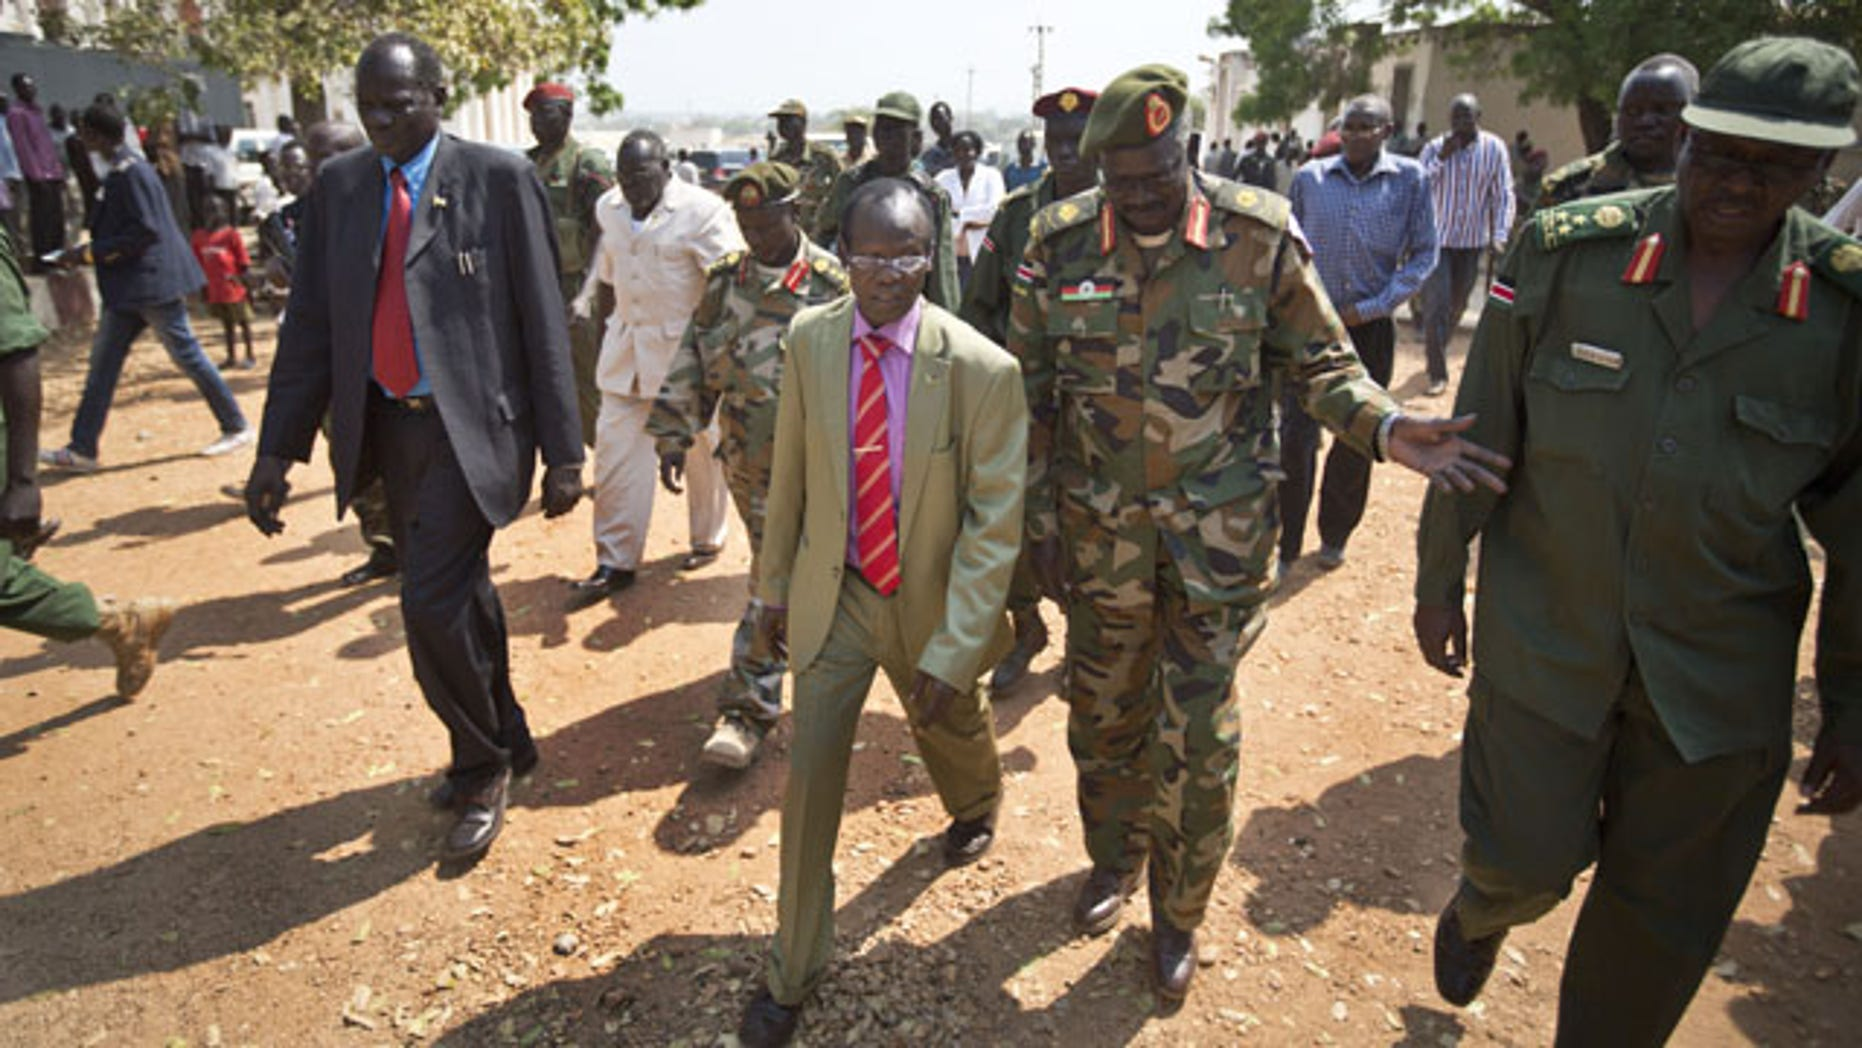 December 28, 2013: South Sudan's current Vice-President James Wani Igga, centre left, arrives to visit wounded patients at the Juba Military Hospital in Juba, South Sudan. (AP Photo)